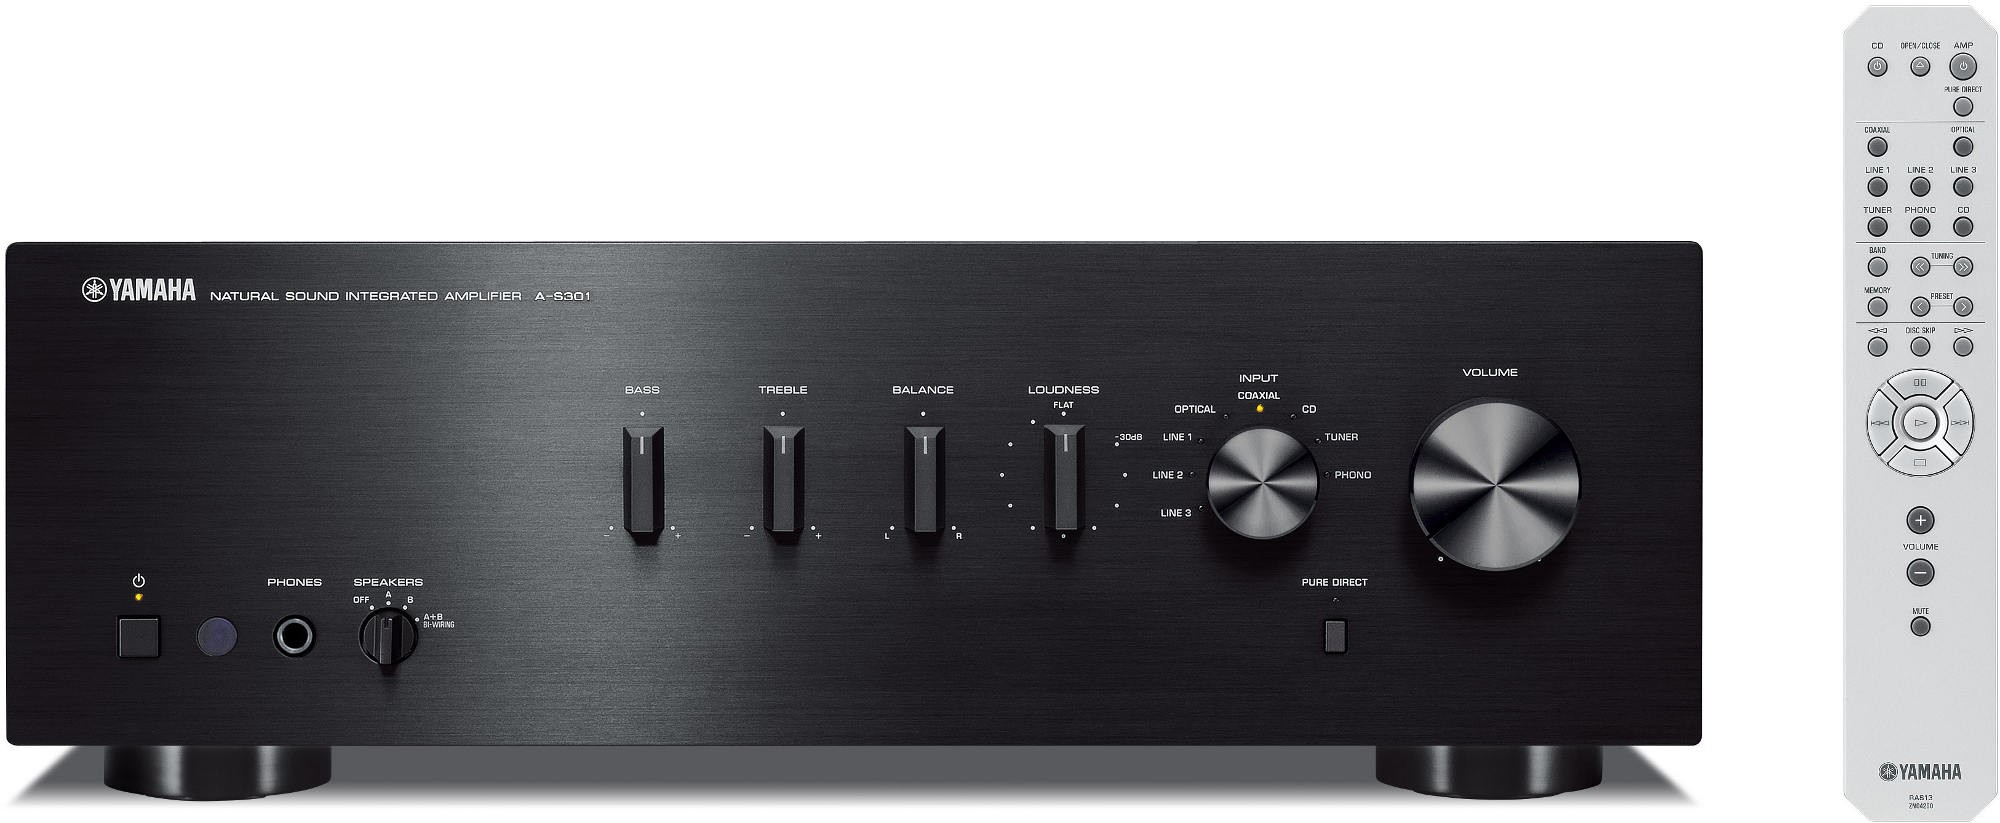 YAMAHA - AS 301 BLACK